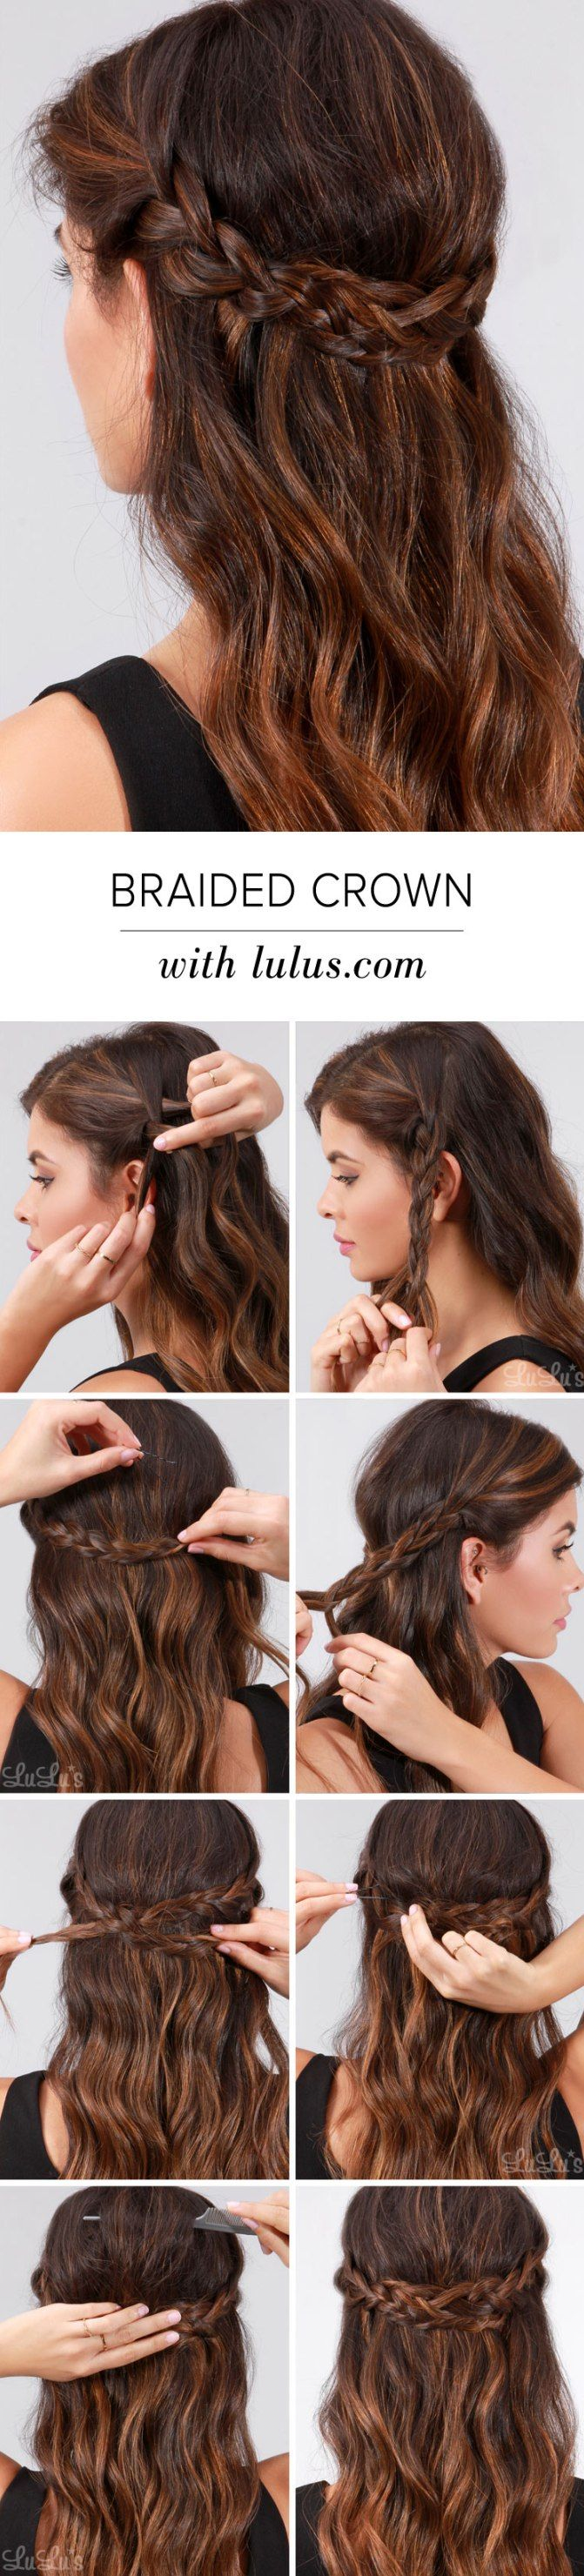 easy braids that will fix any bad hair day bad hair hair style